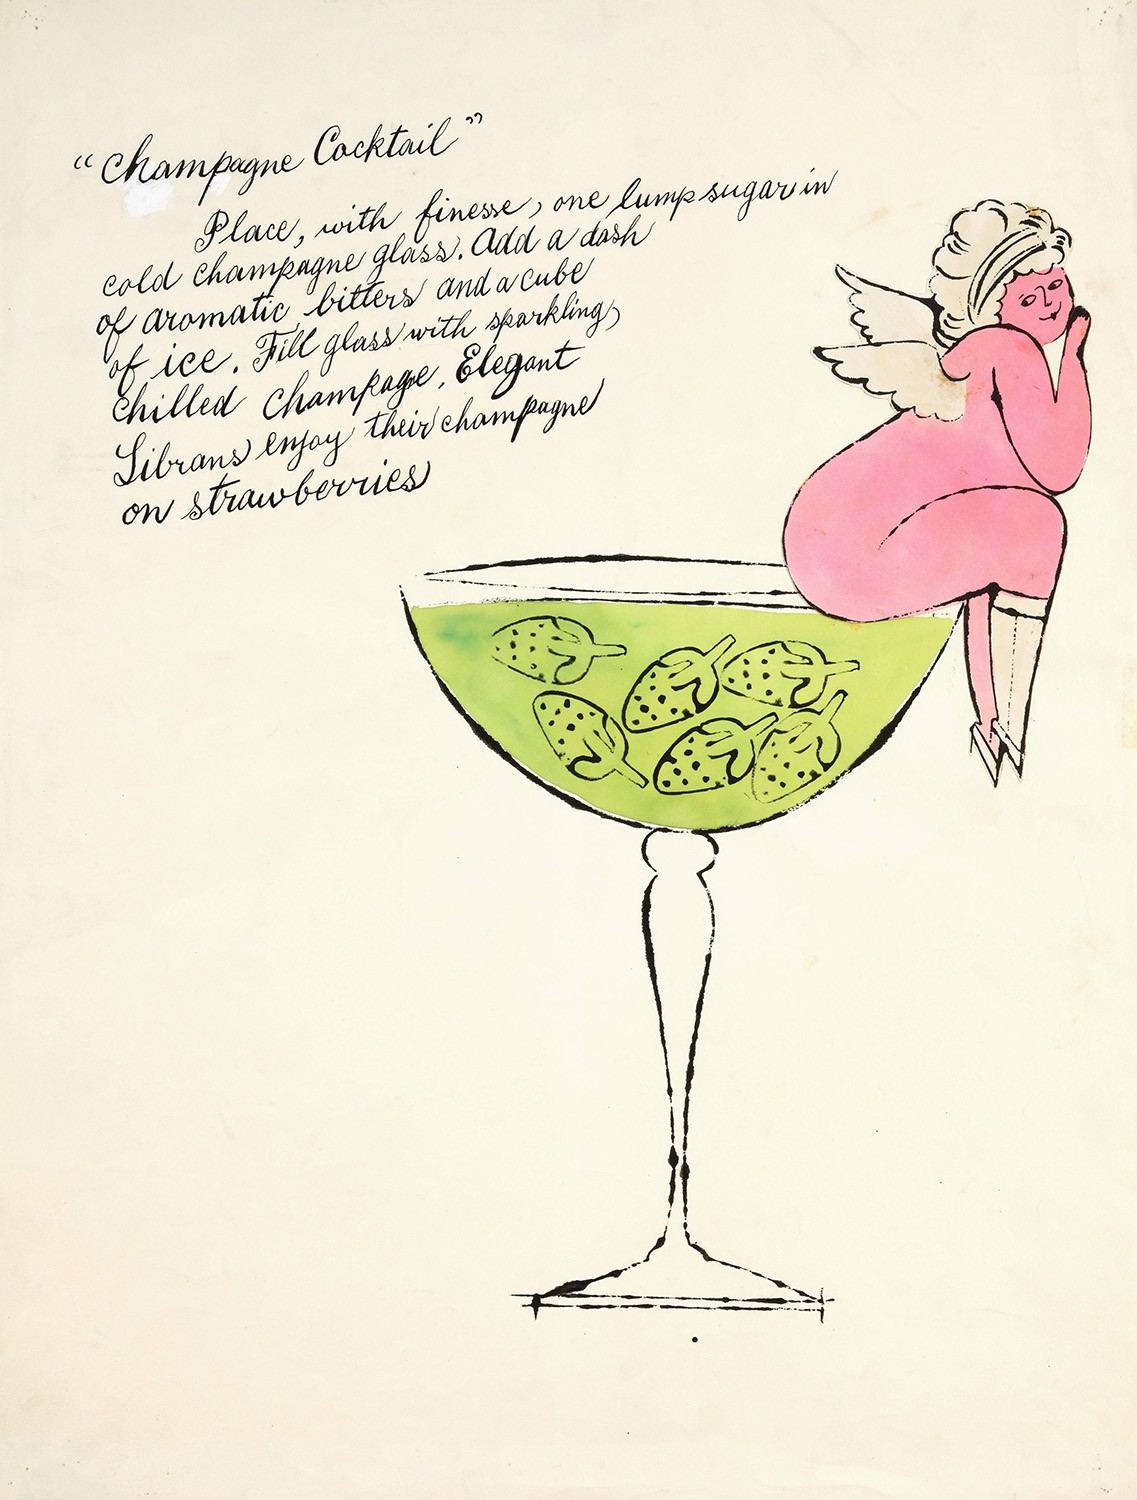 A pink cherub sits on the edge of a cocktail glass filled with green liquid and strawberries. In the top left corner, a cocktail recipe is written in old-fashioned handwriting.